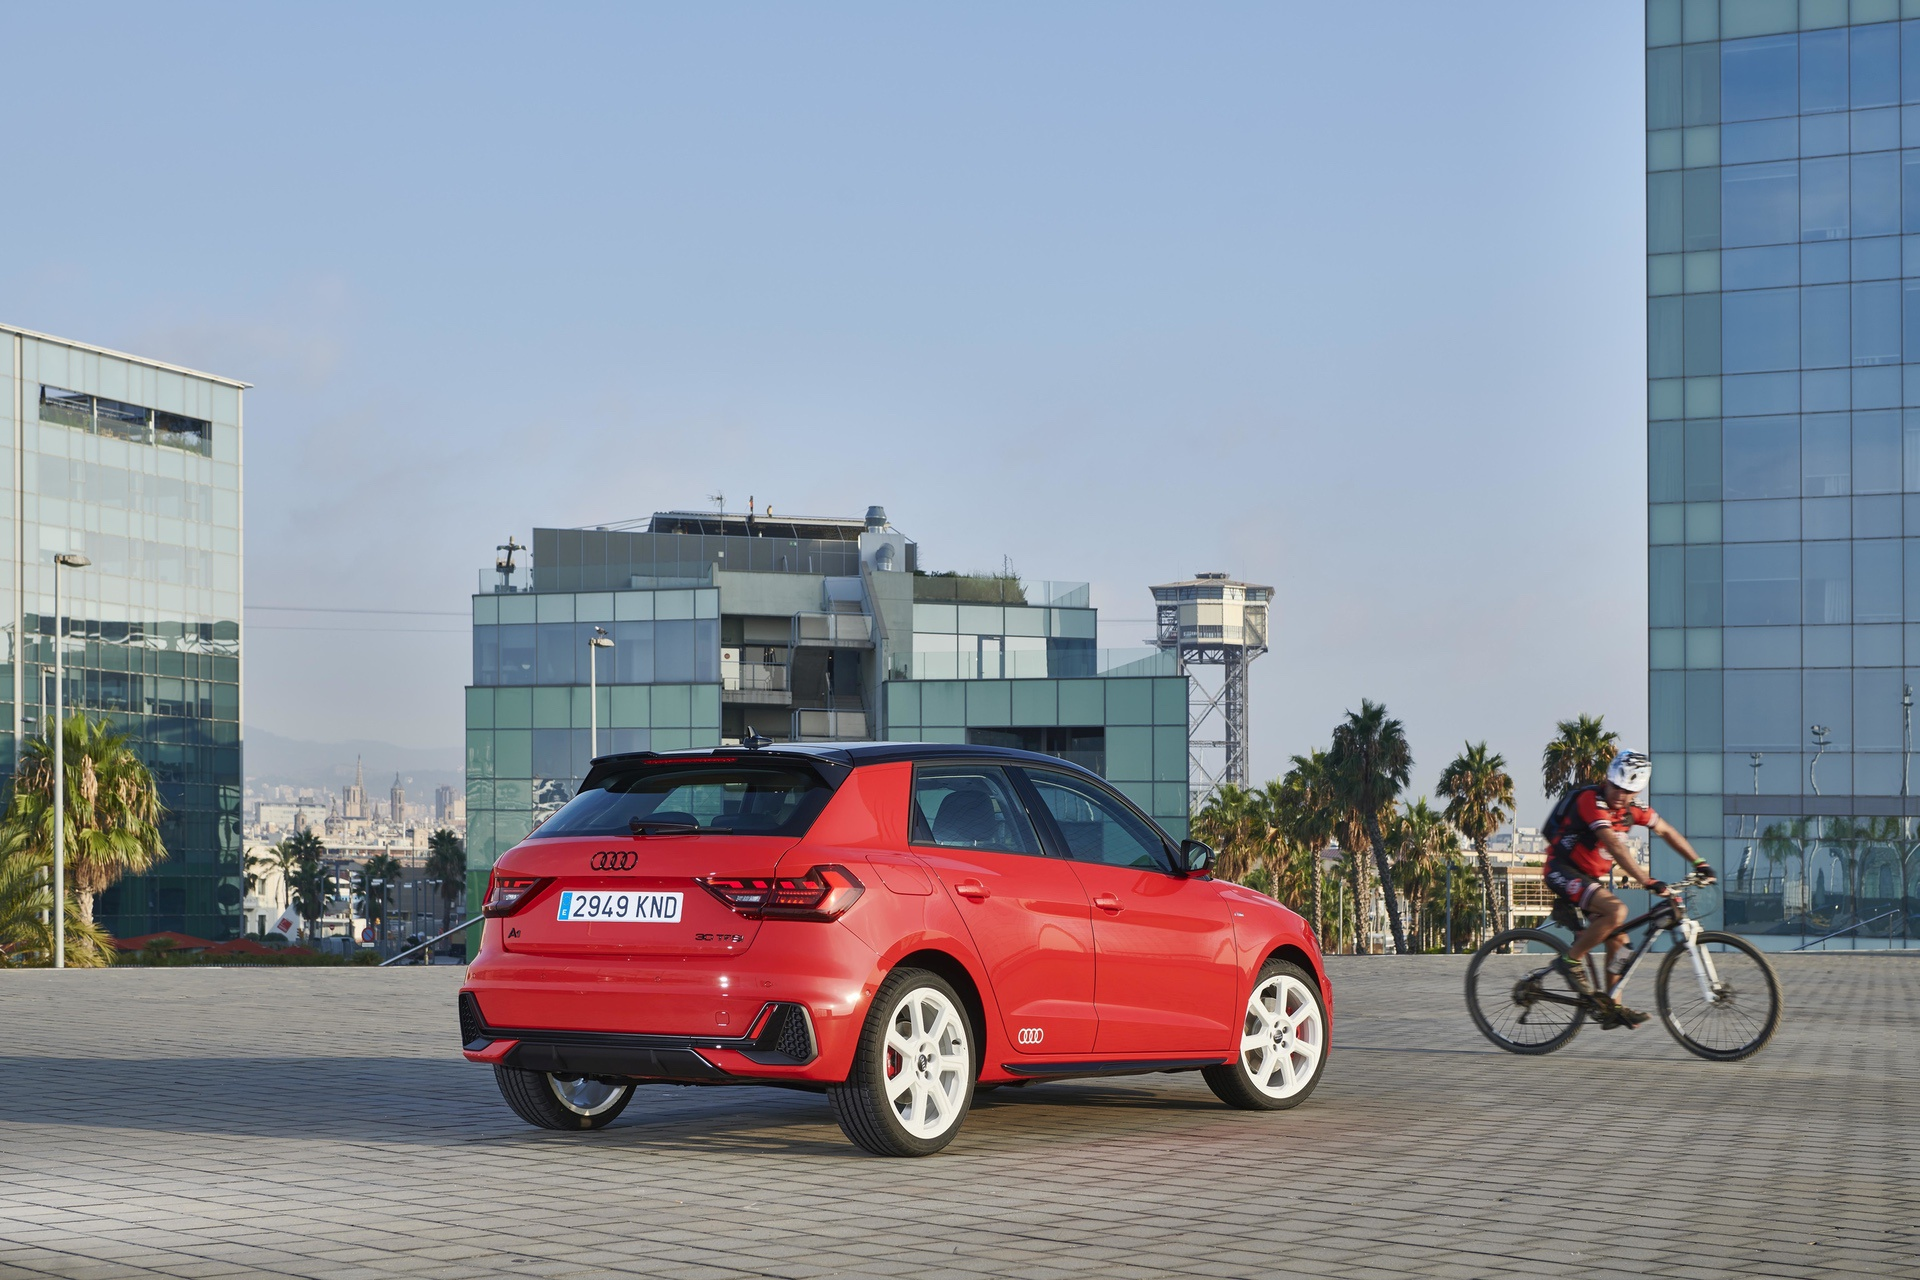 Audi A1 Sportback in Barcelona, Port Vell